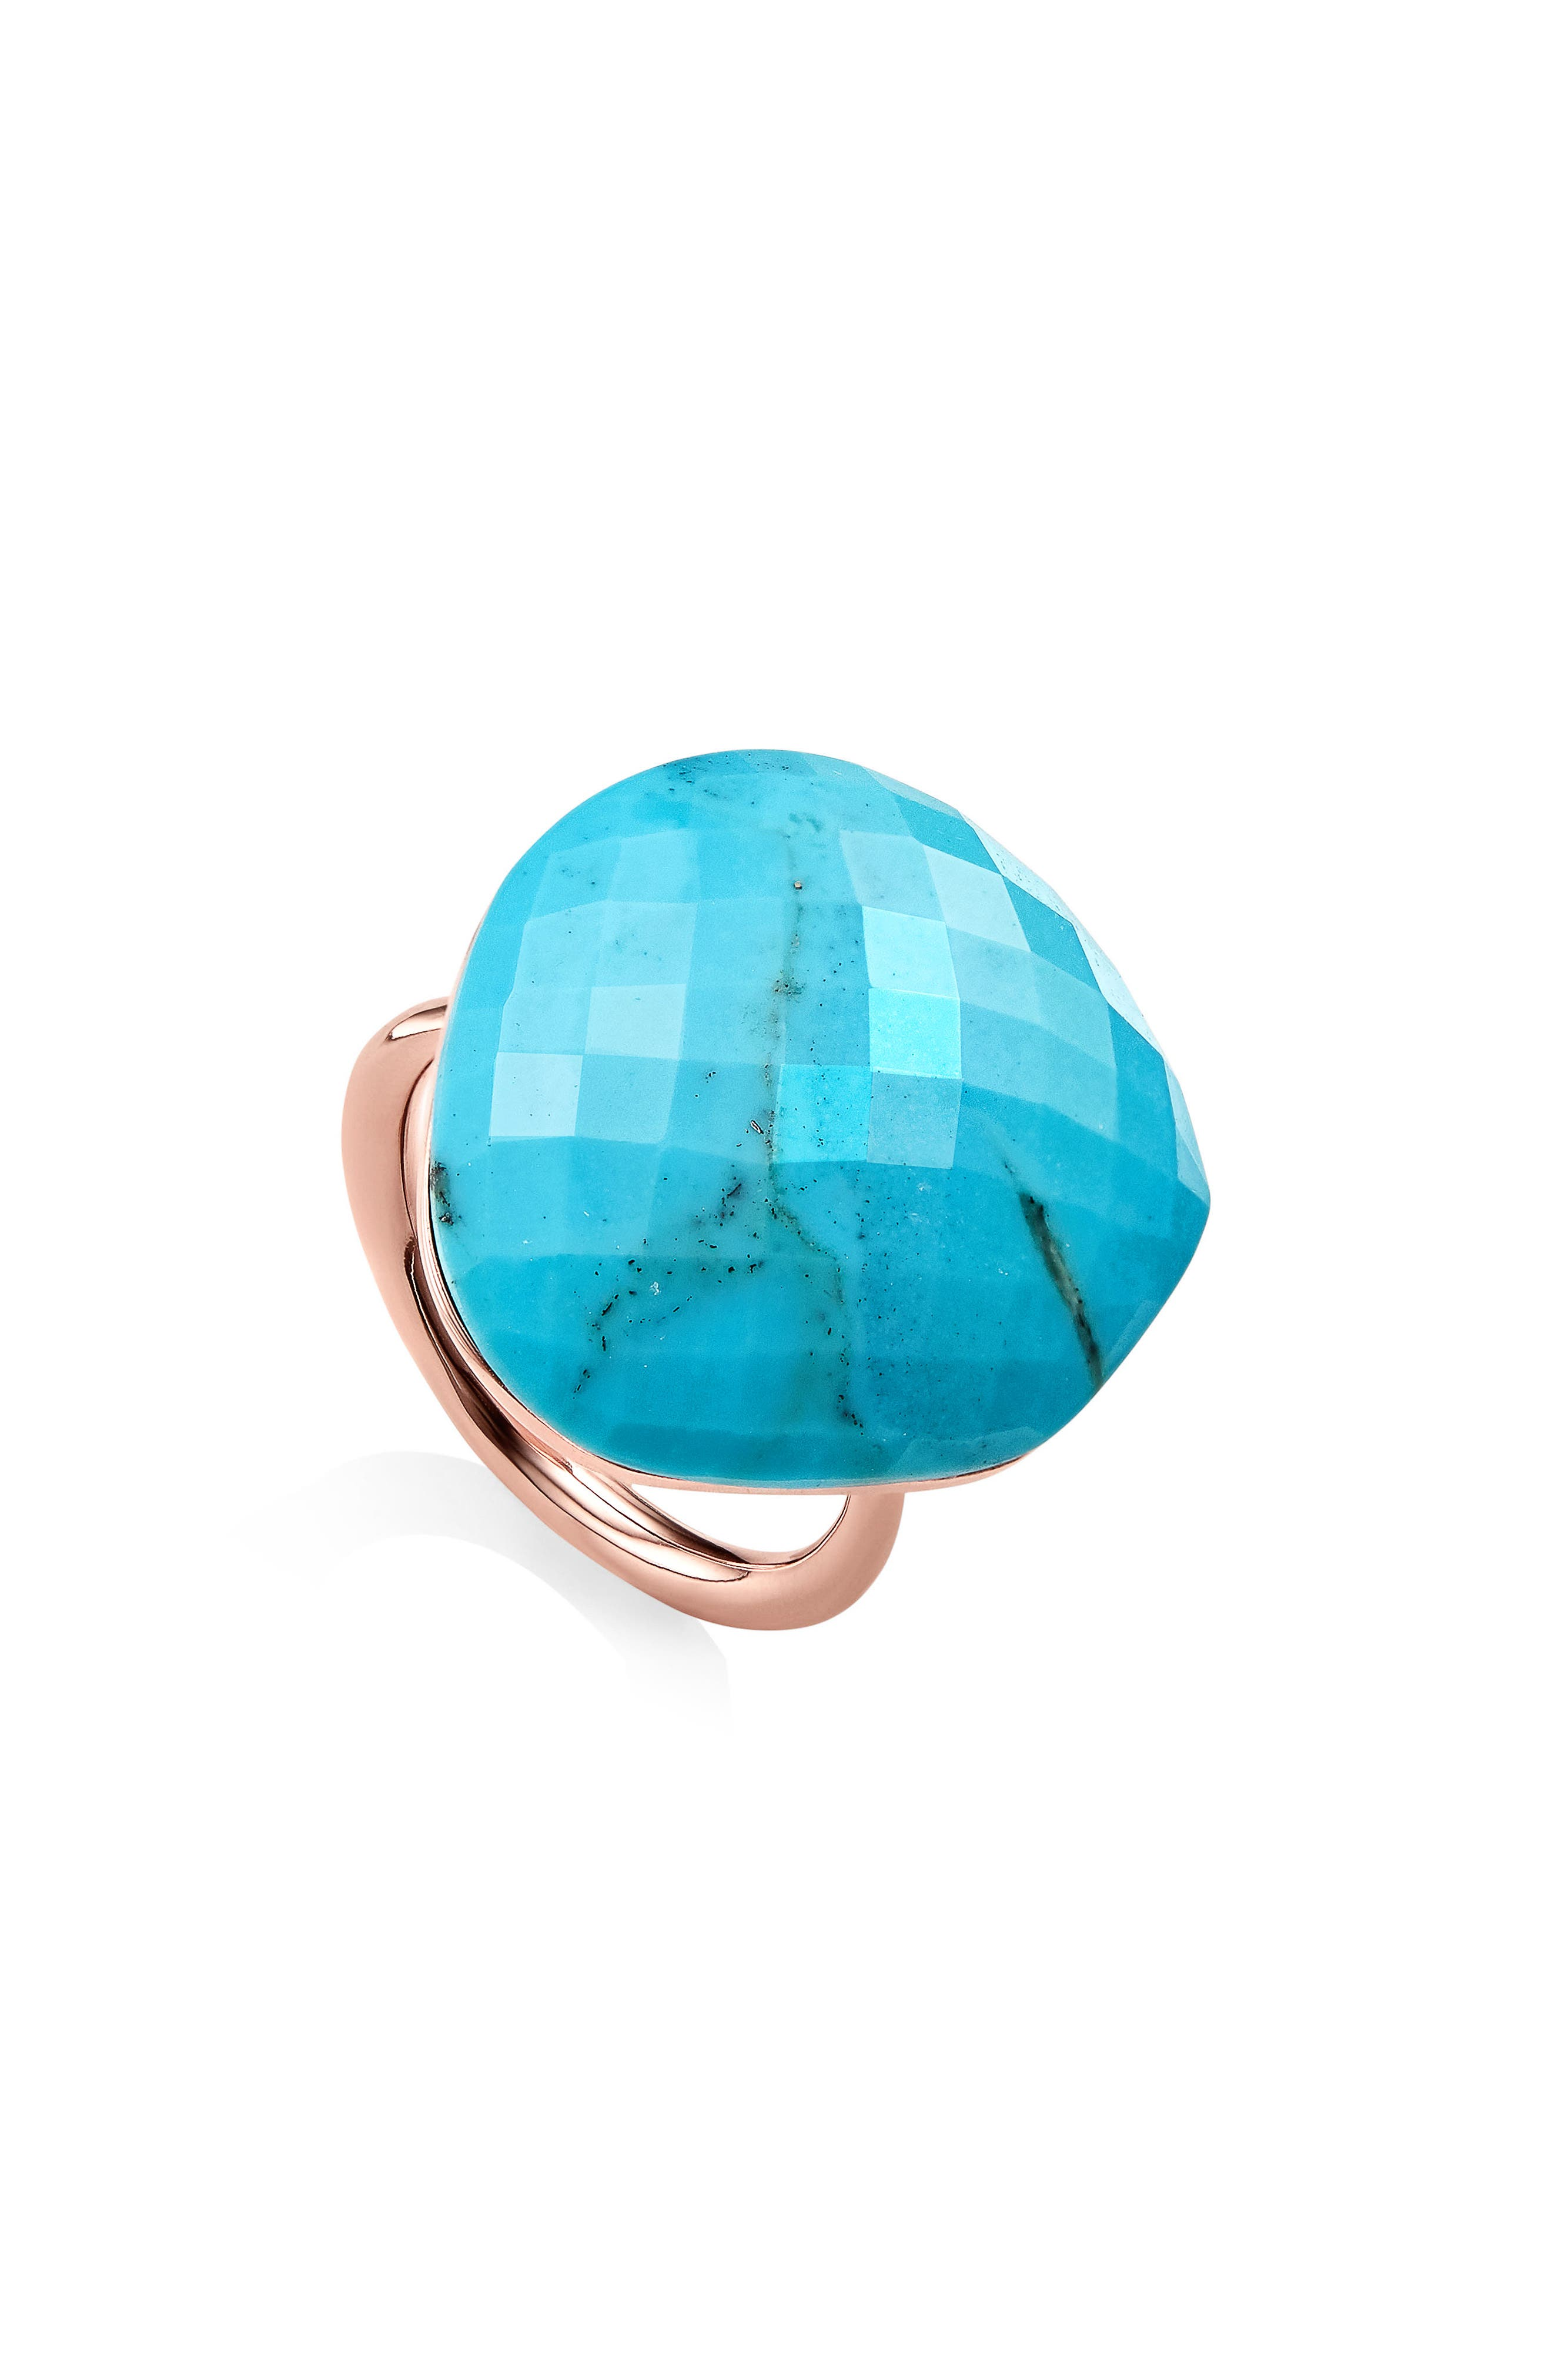 Nura Large Pebble Ring,                         Main,                         color, Turquoise